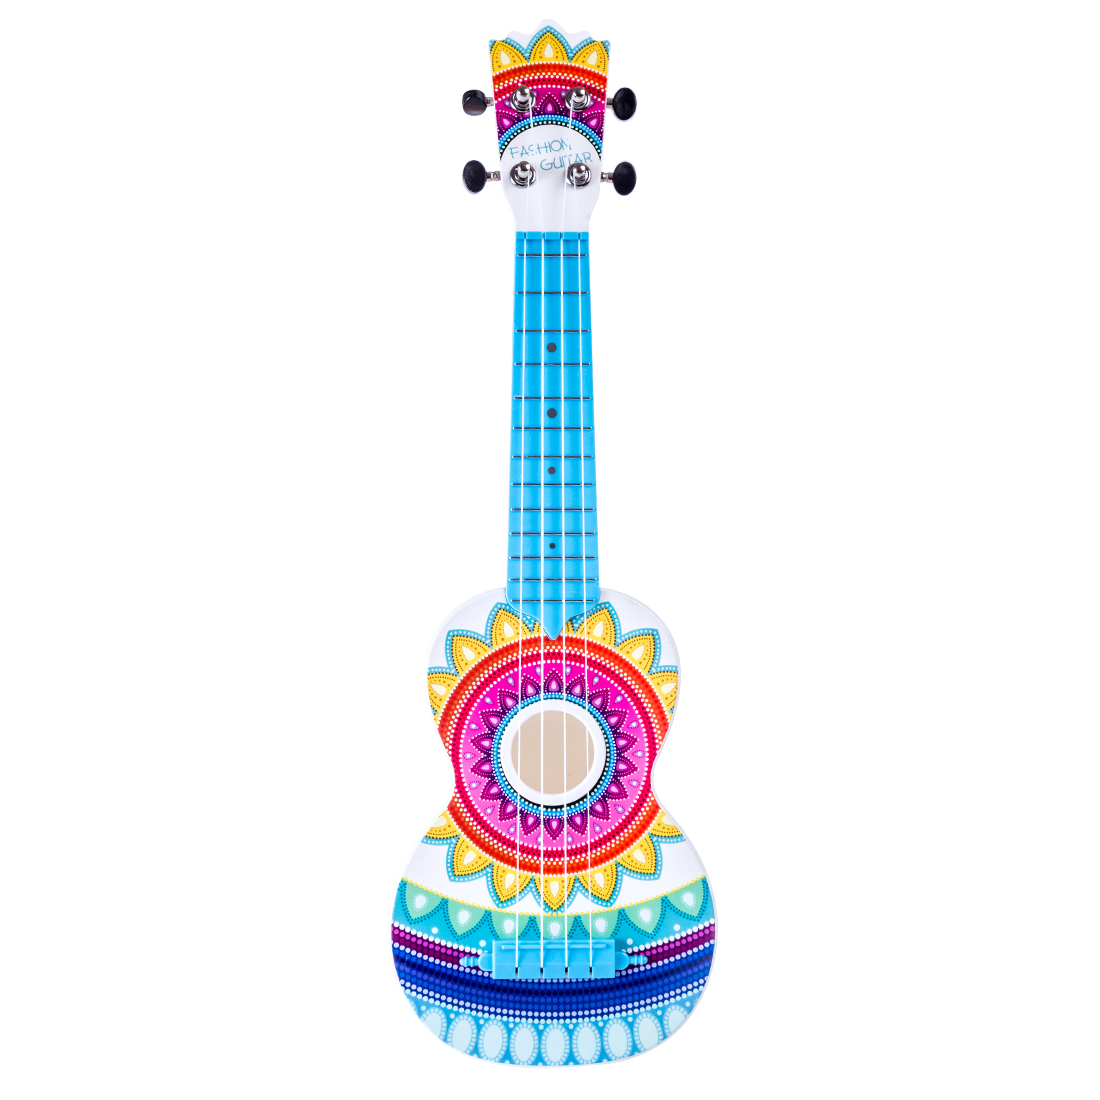 21 Inches Children Guitar Type Ukulele Early Educational Musical Instruments Toys Learning Skills Kits